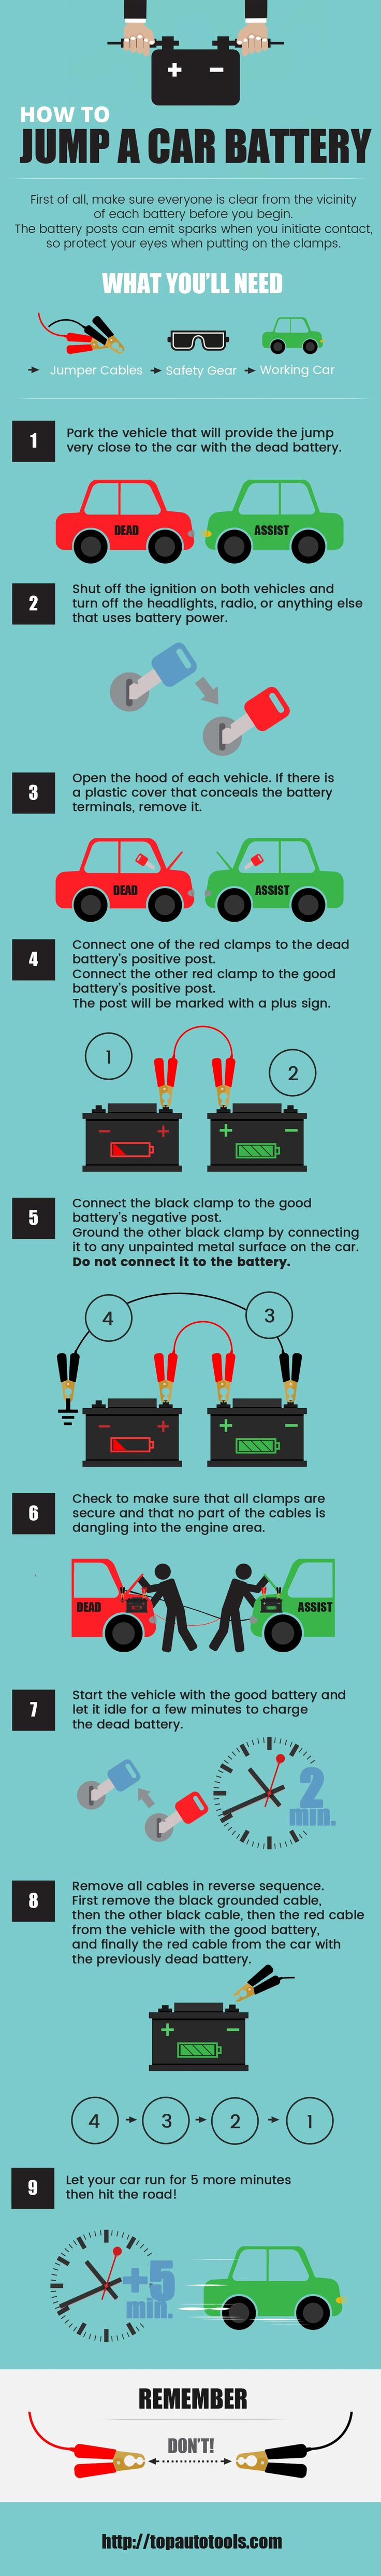 Jump Starting a Car #Infographic #HowTo #Transportation